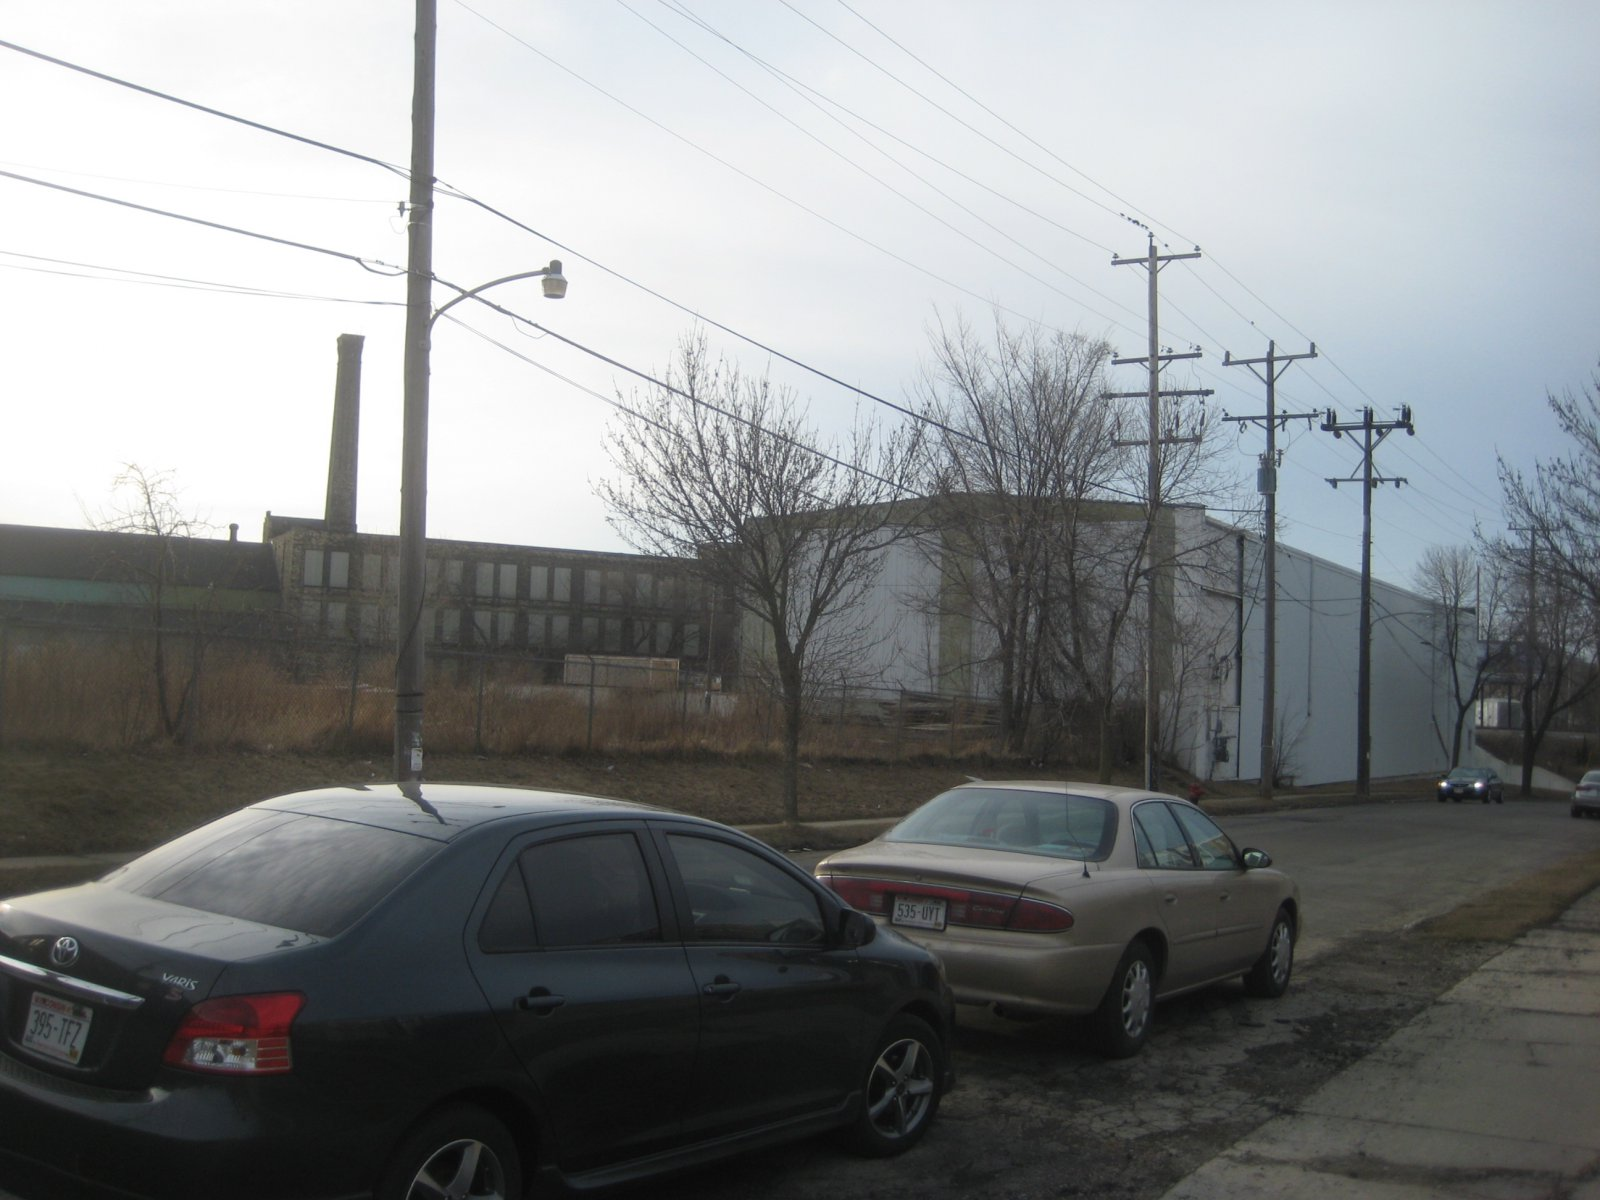 Proposed redevelopment site.